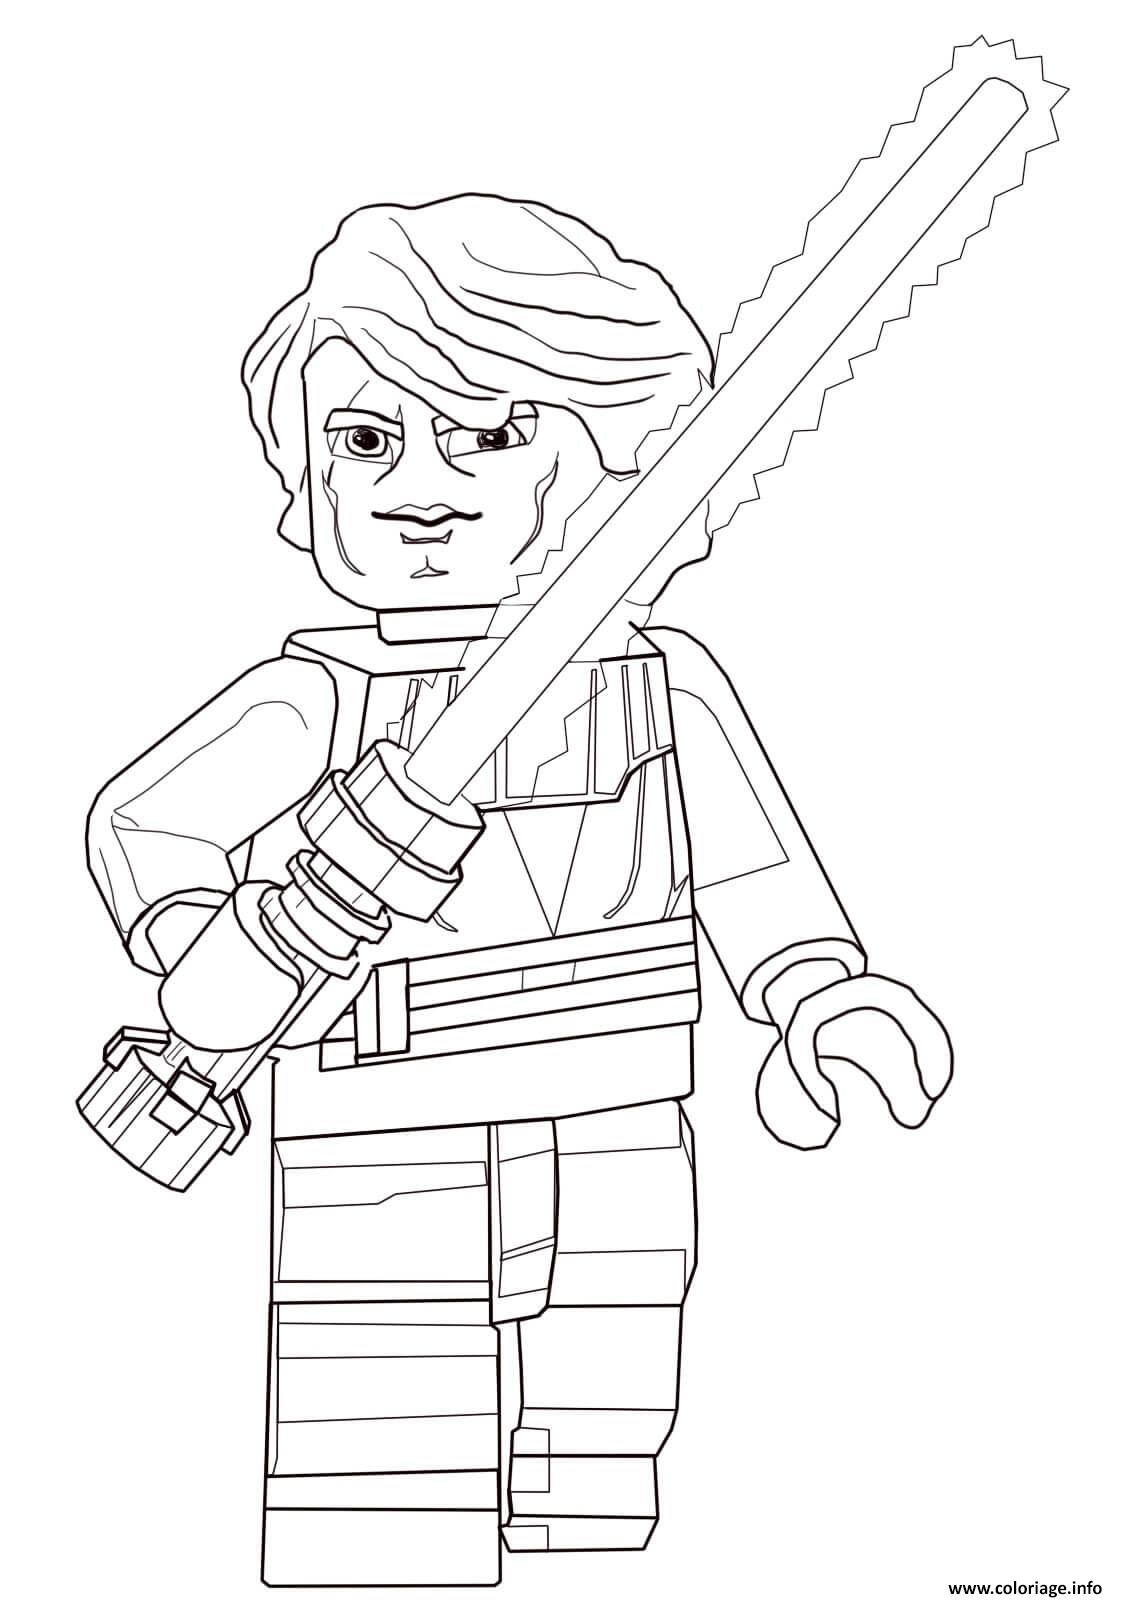 Coloriage Lego Star Wars Anakin Skywalker Dessin